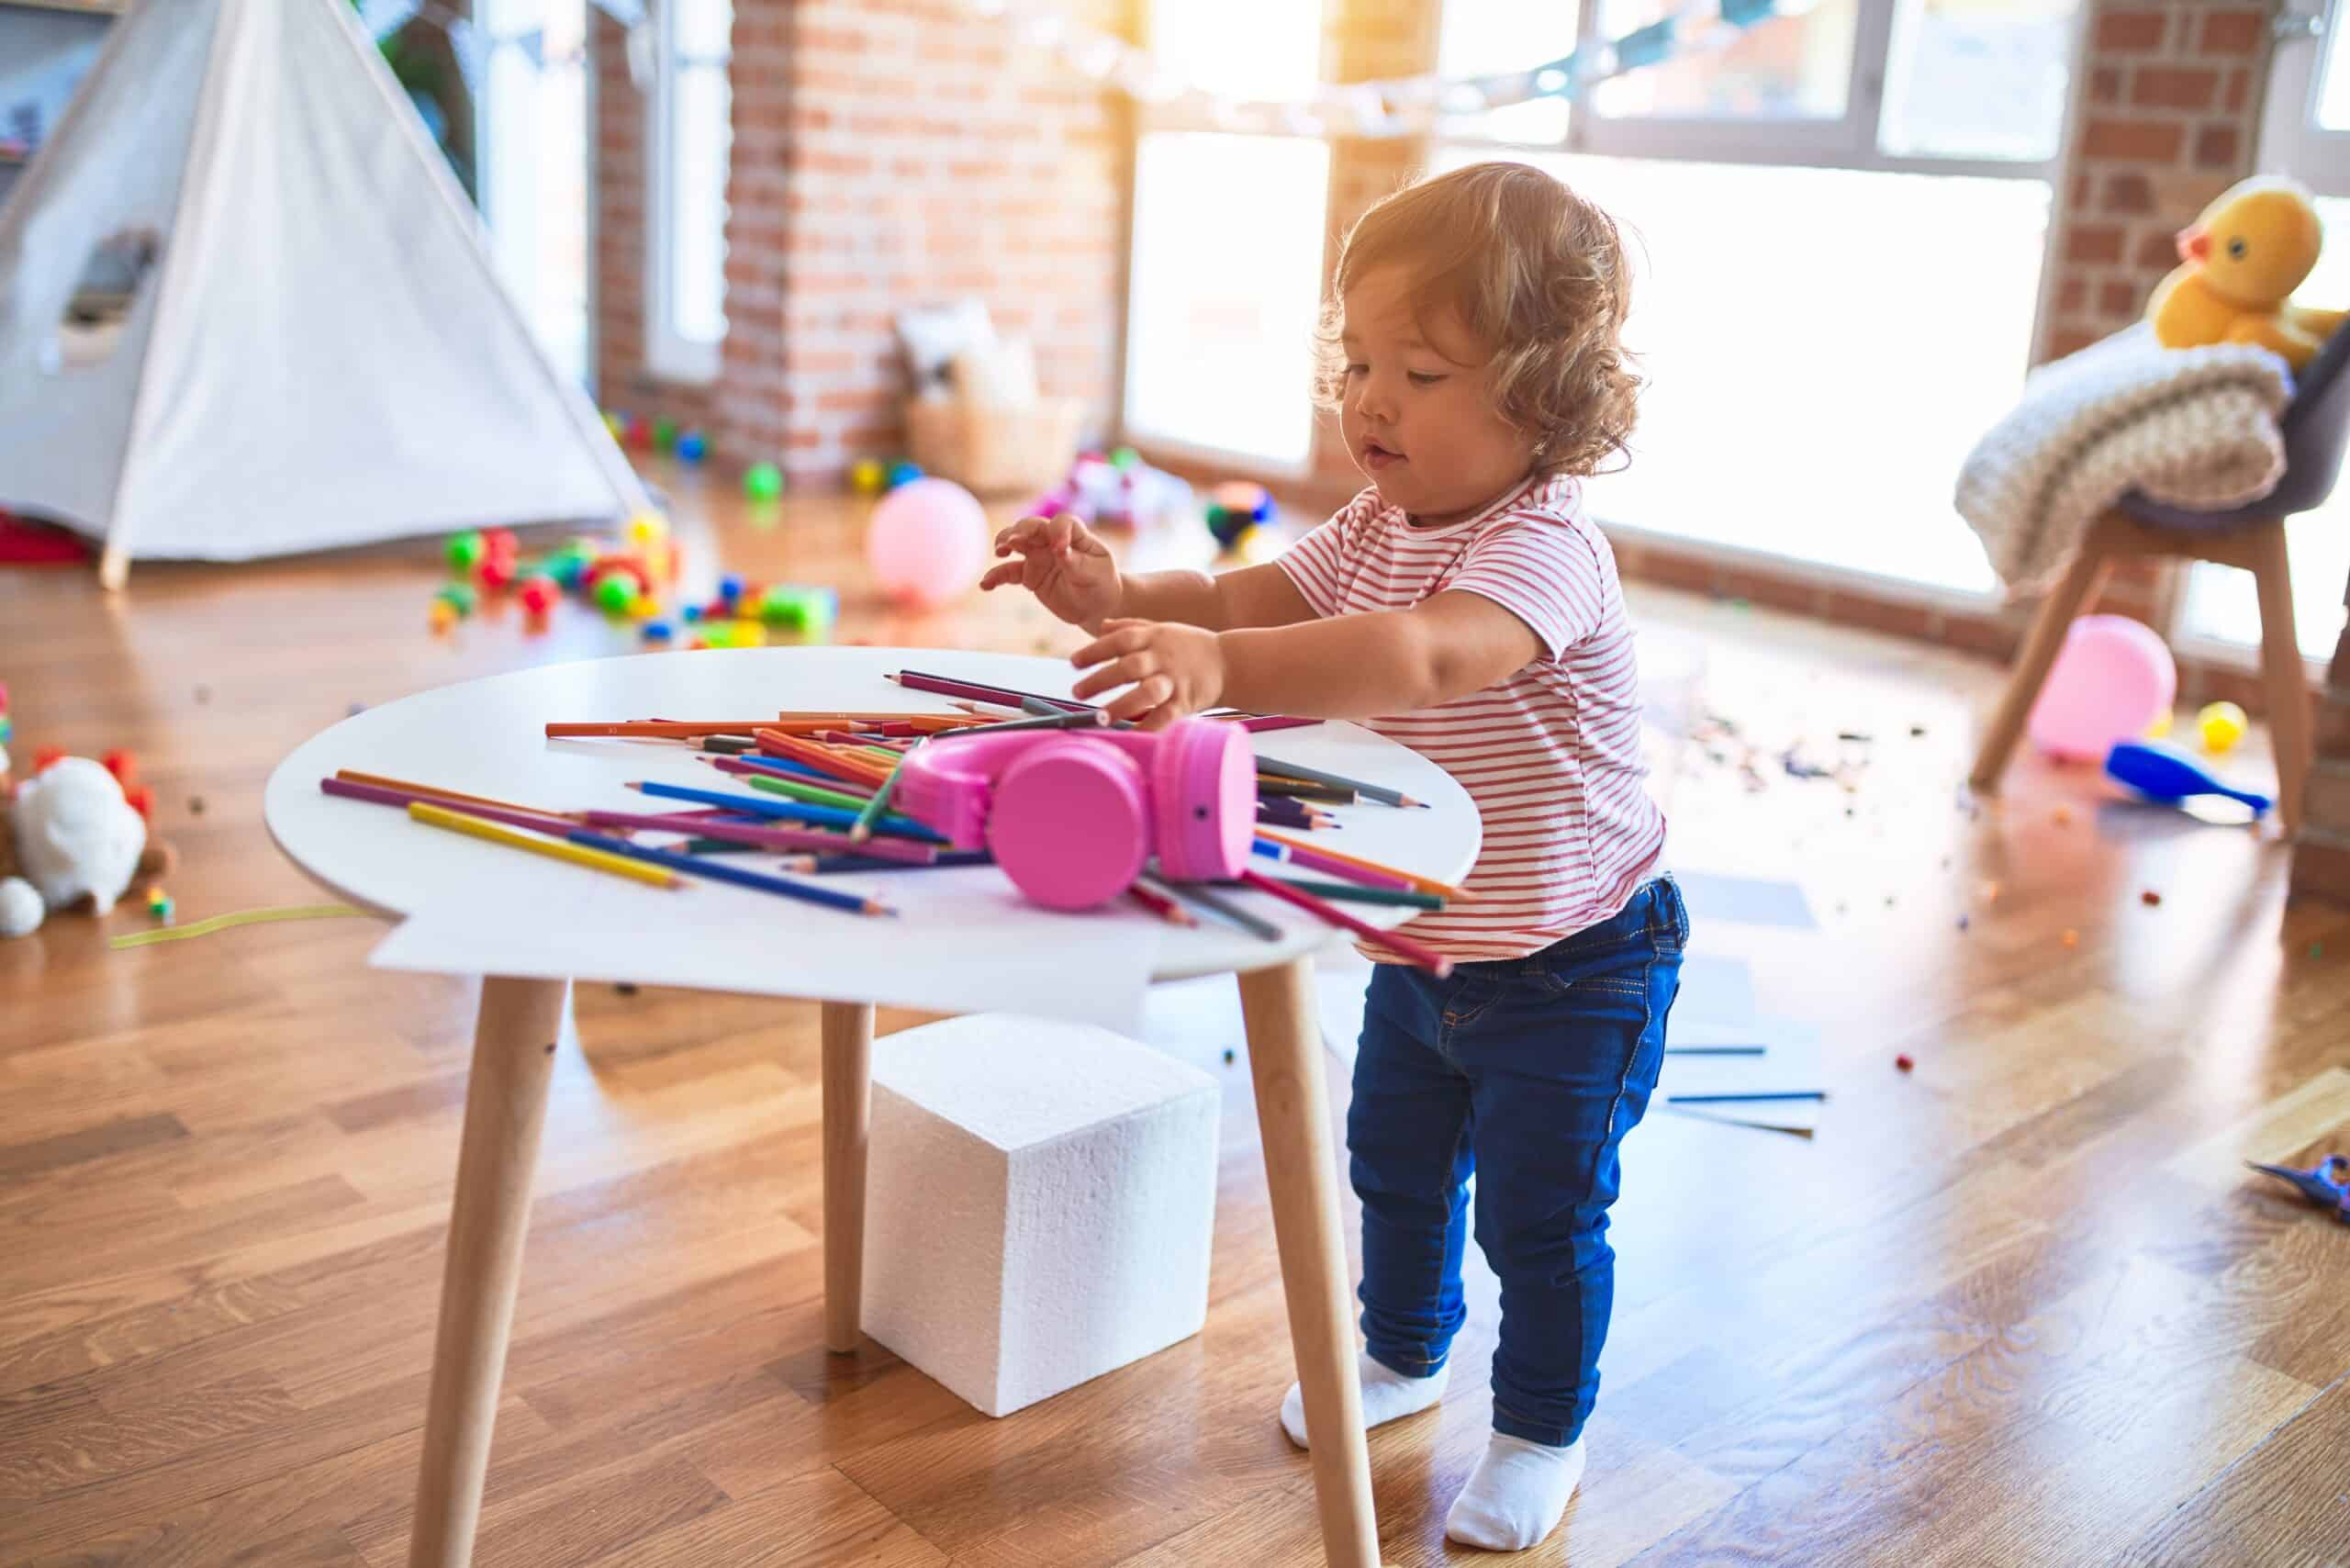 5 ways play helps your child develop